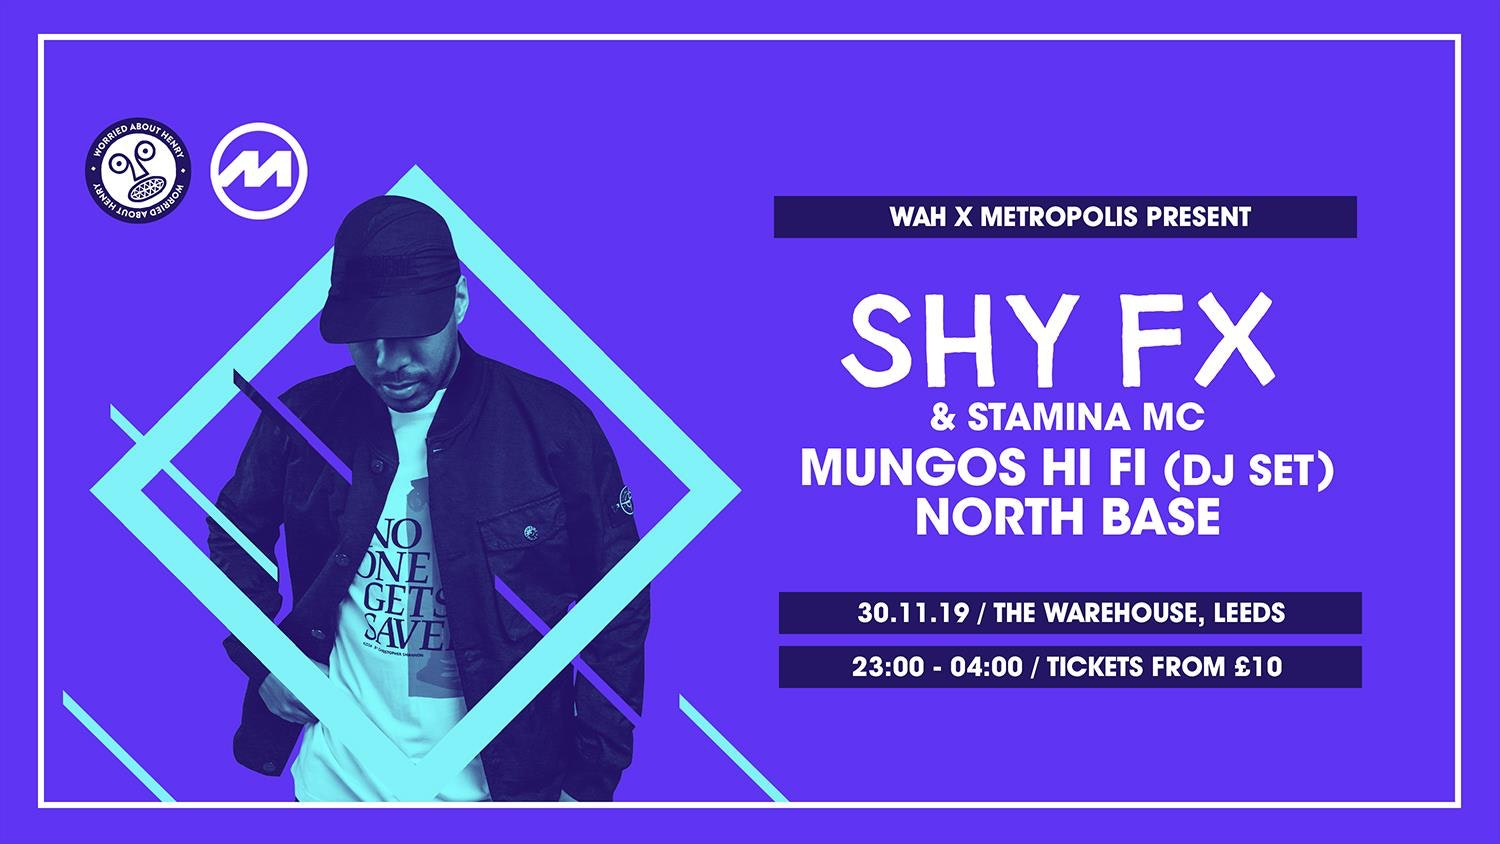 Shy FX & Mungo's Hi Fi @ The Warehouse Leeds